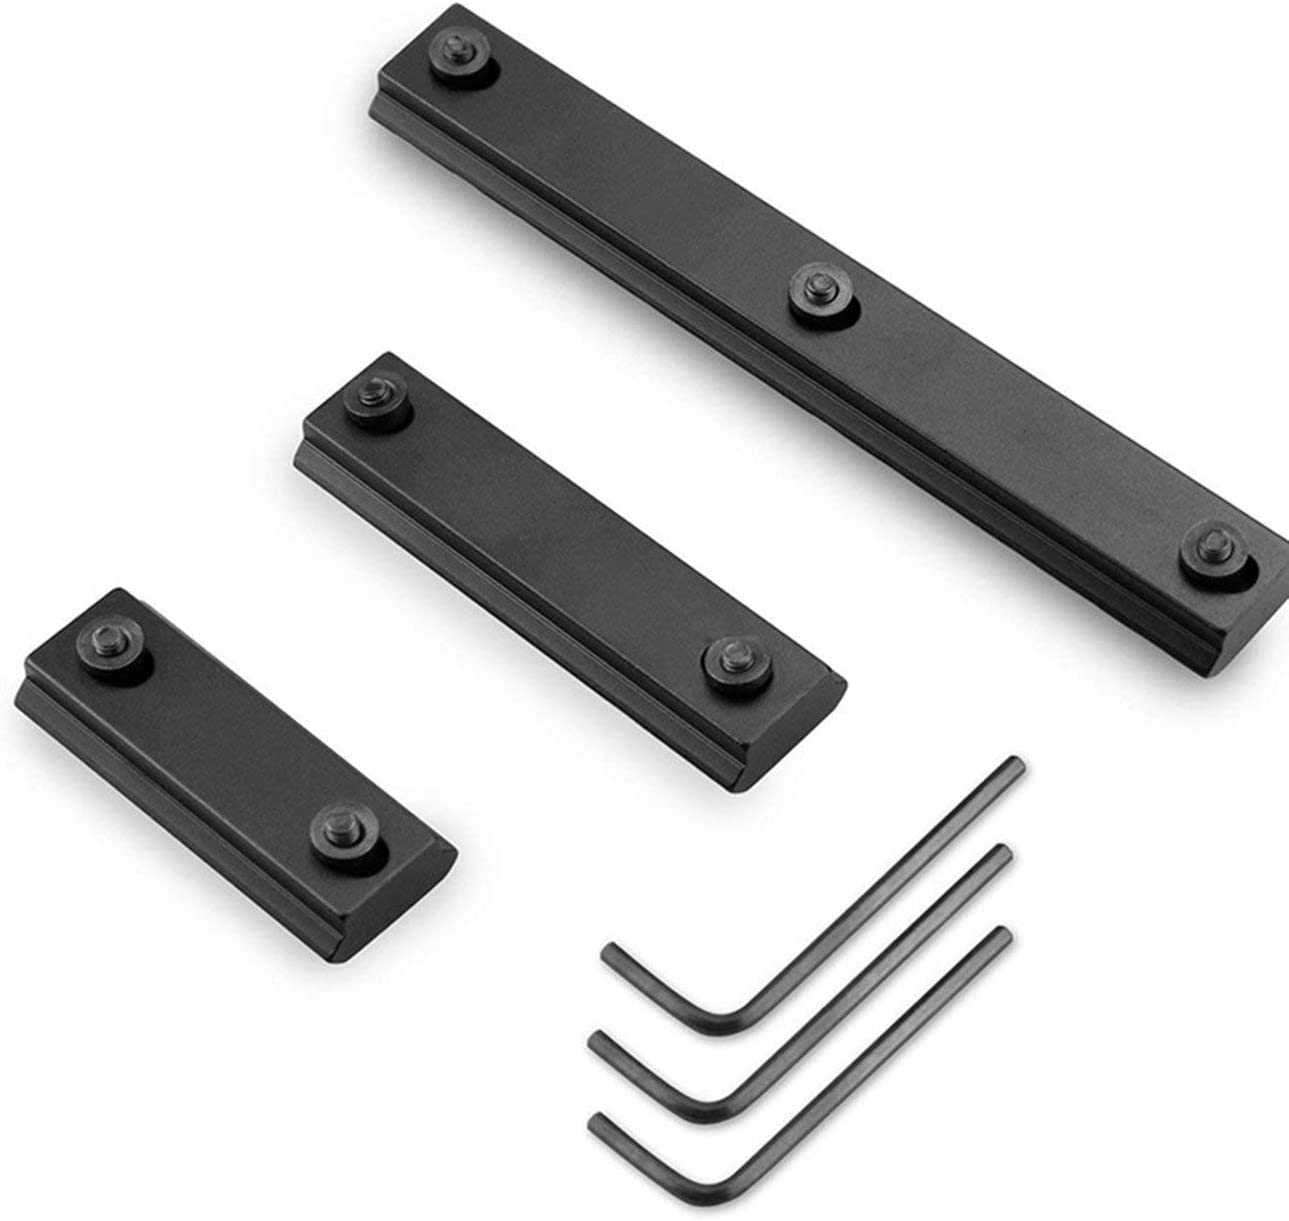 Elviray Durable Use Rail Sections for Keymod System Modkin Lightweight Keymod Rail Mount Pack of 3 13-Slot 7-Slot 5-Slot Aluminum